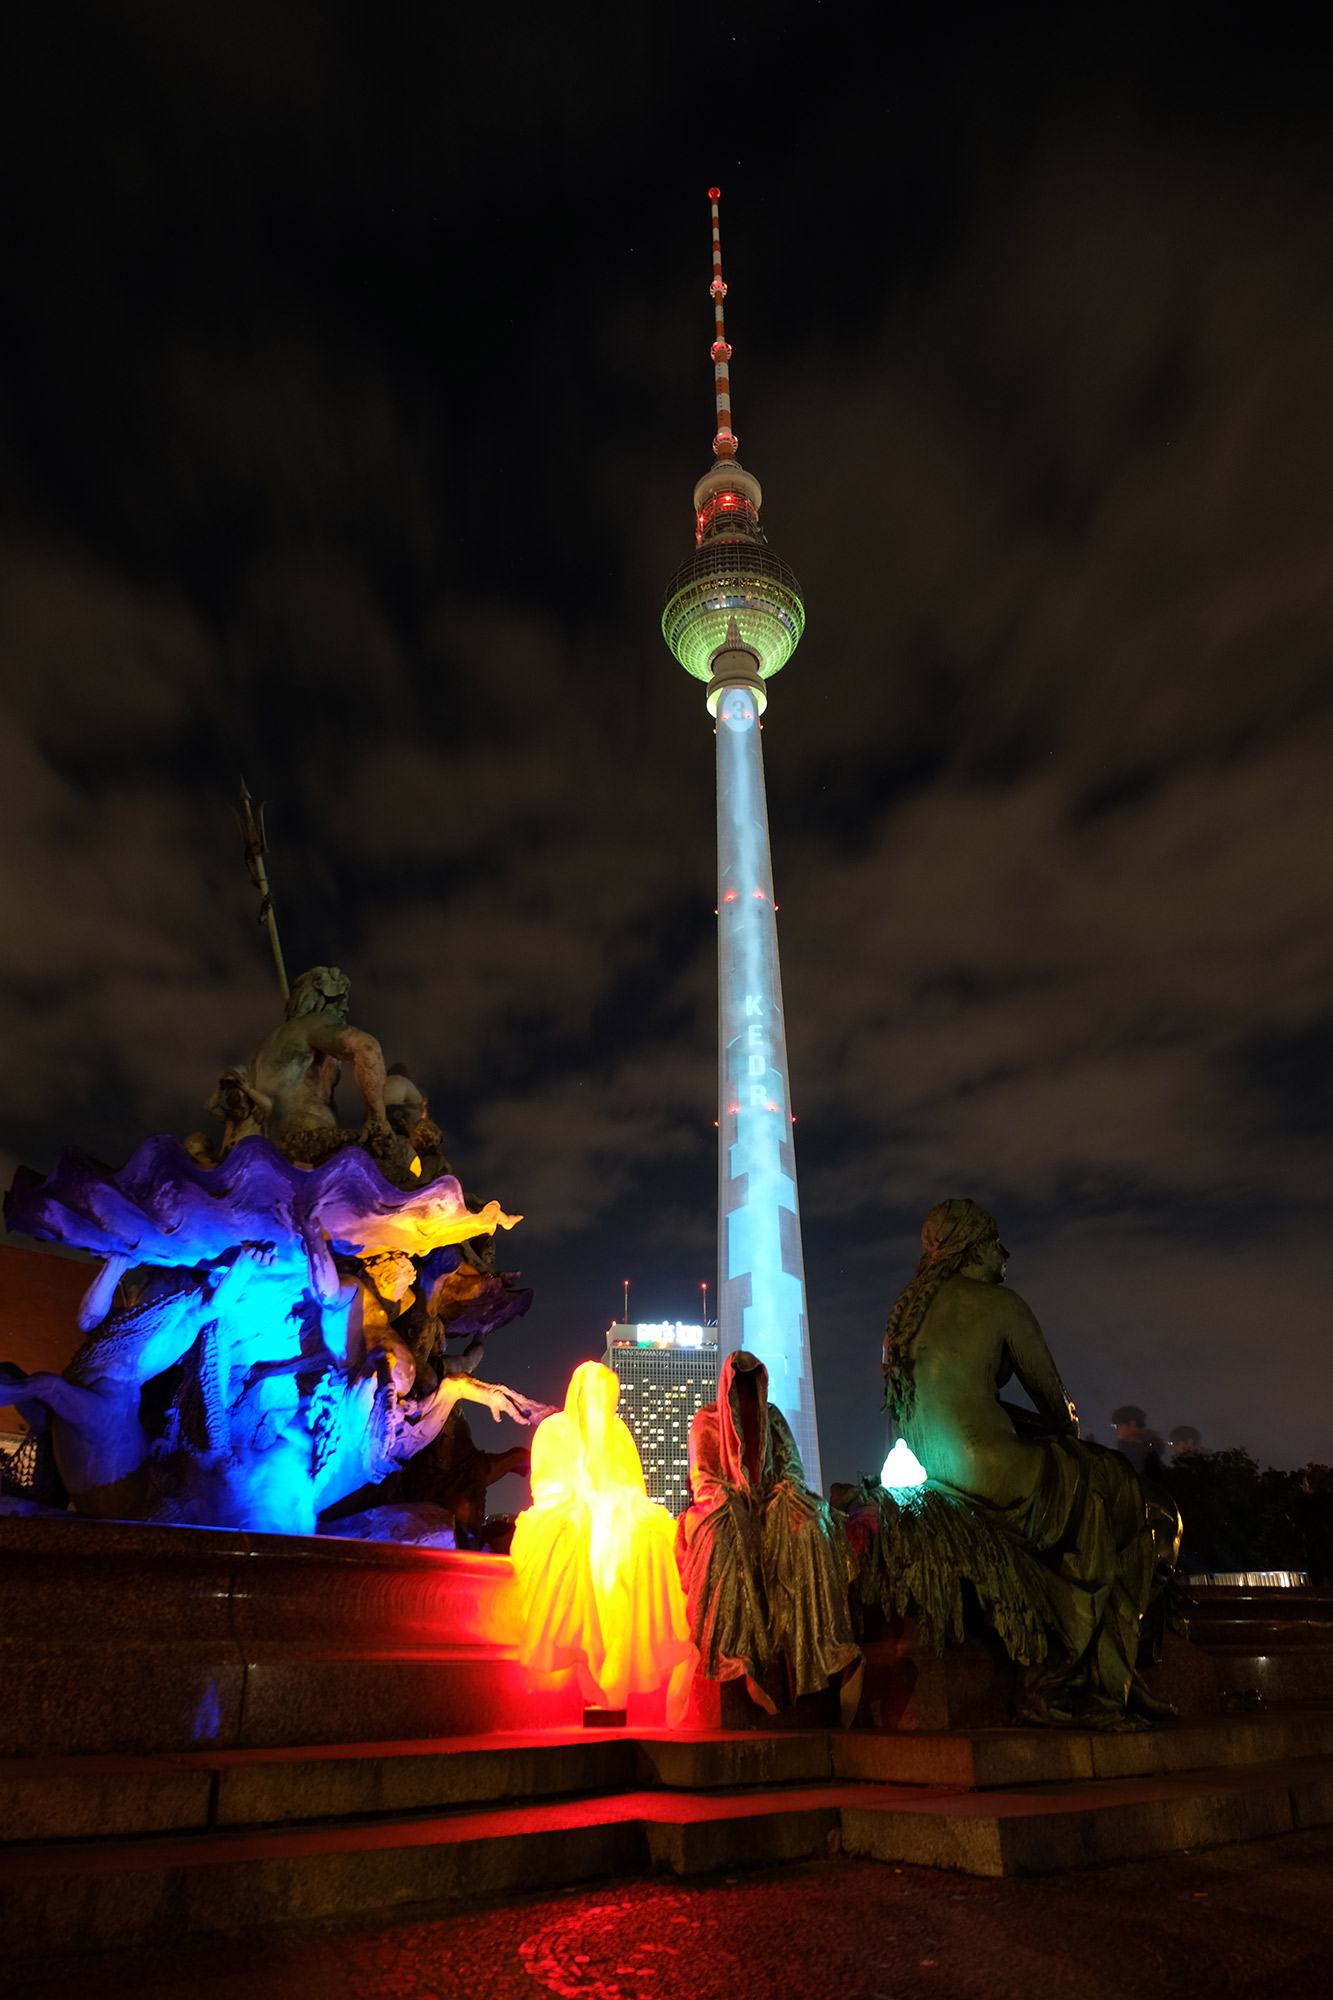 festival-of-lights-berlin-tv-tower-light-art-fine-arts-contemporary-art-guardians-of-time-manfred-kielnhofer-716